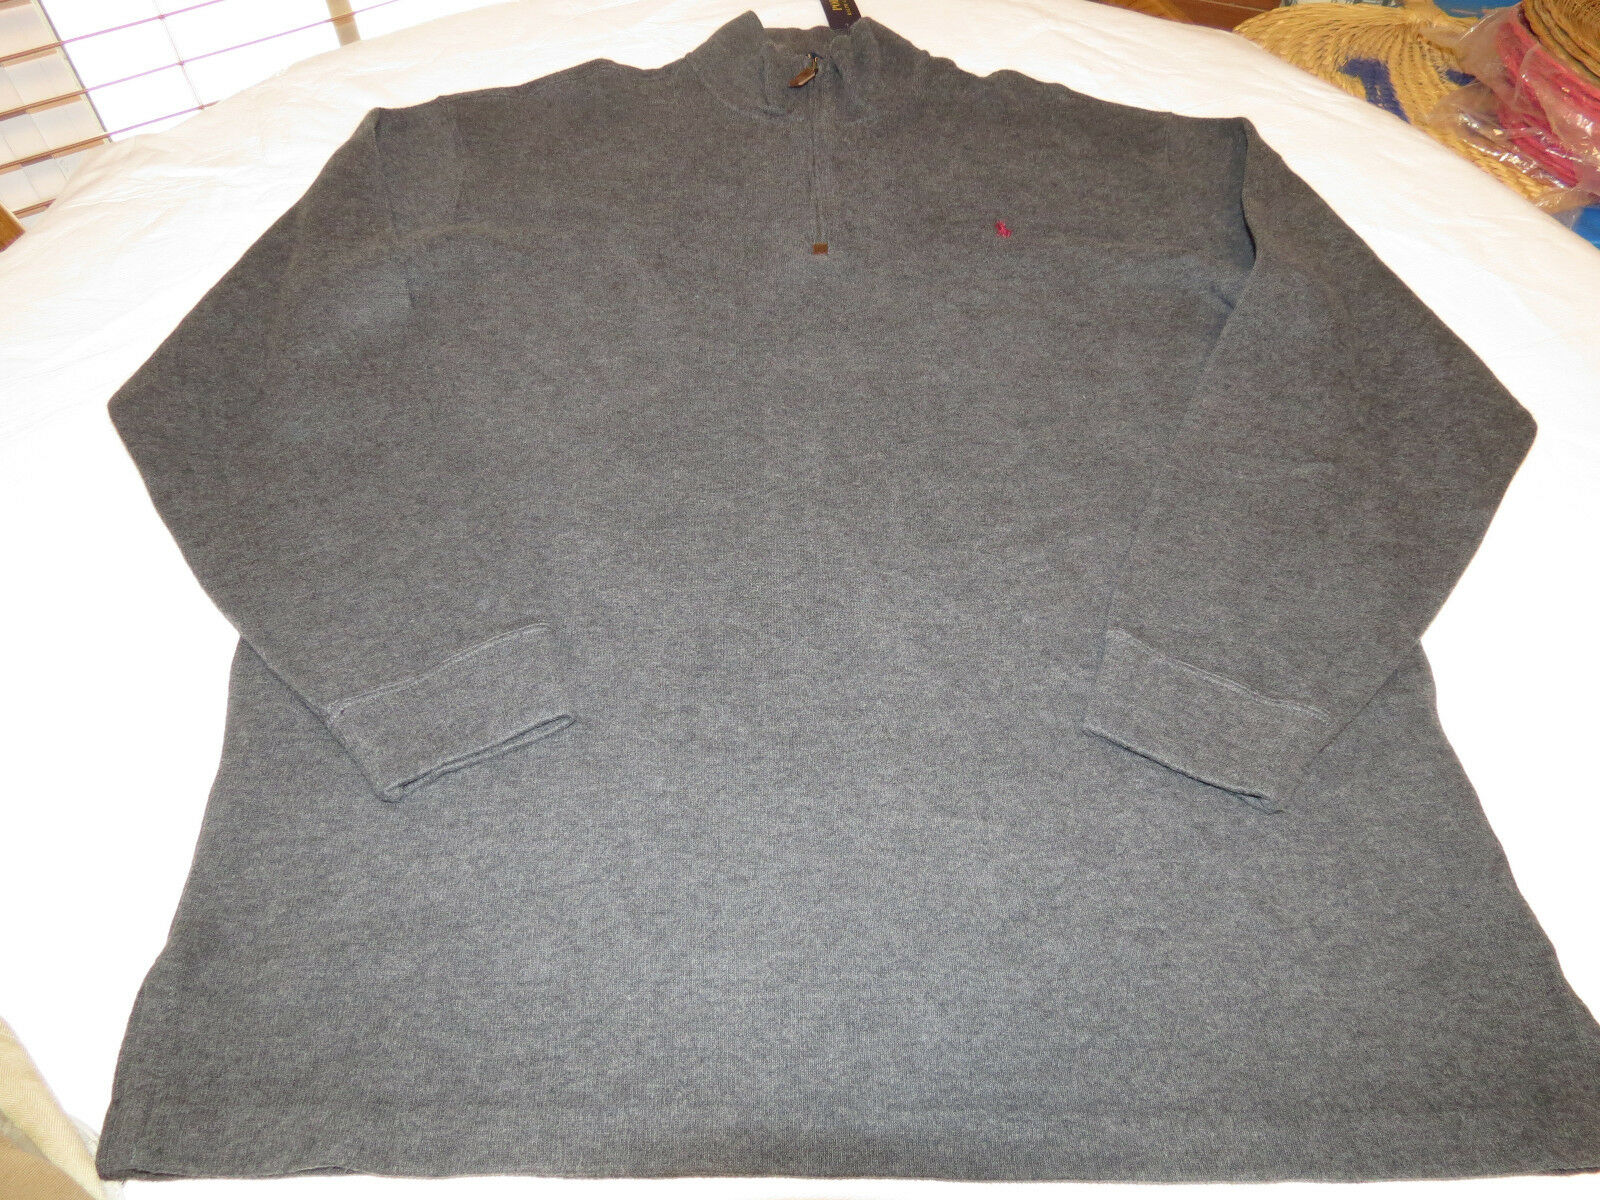 Polo Ralph Lauren sweater pull over shirt Big & Tall XLT TALL Mens 71152399 4009